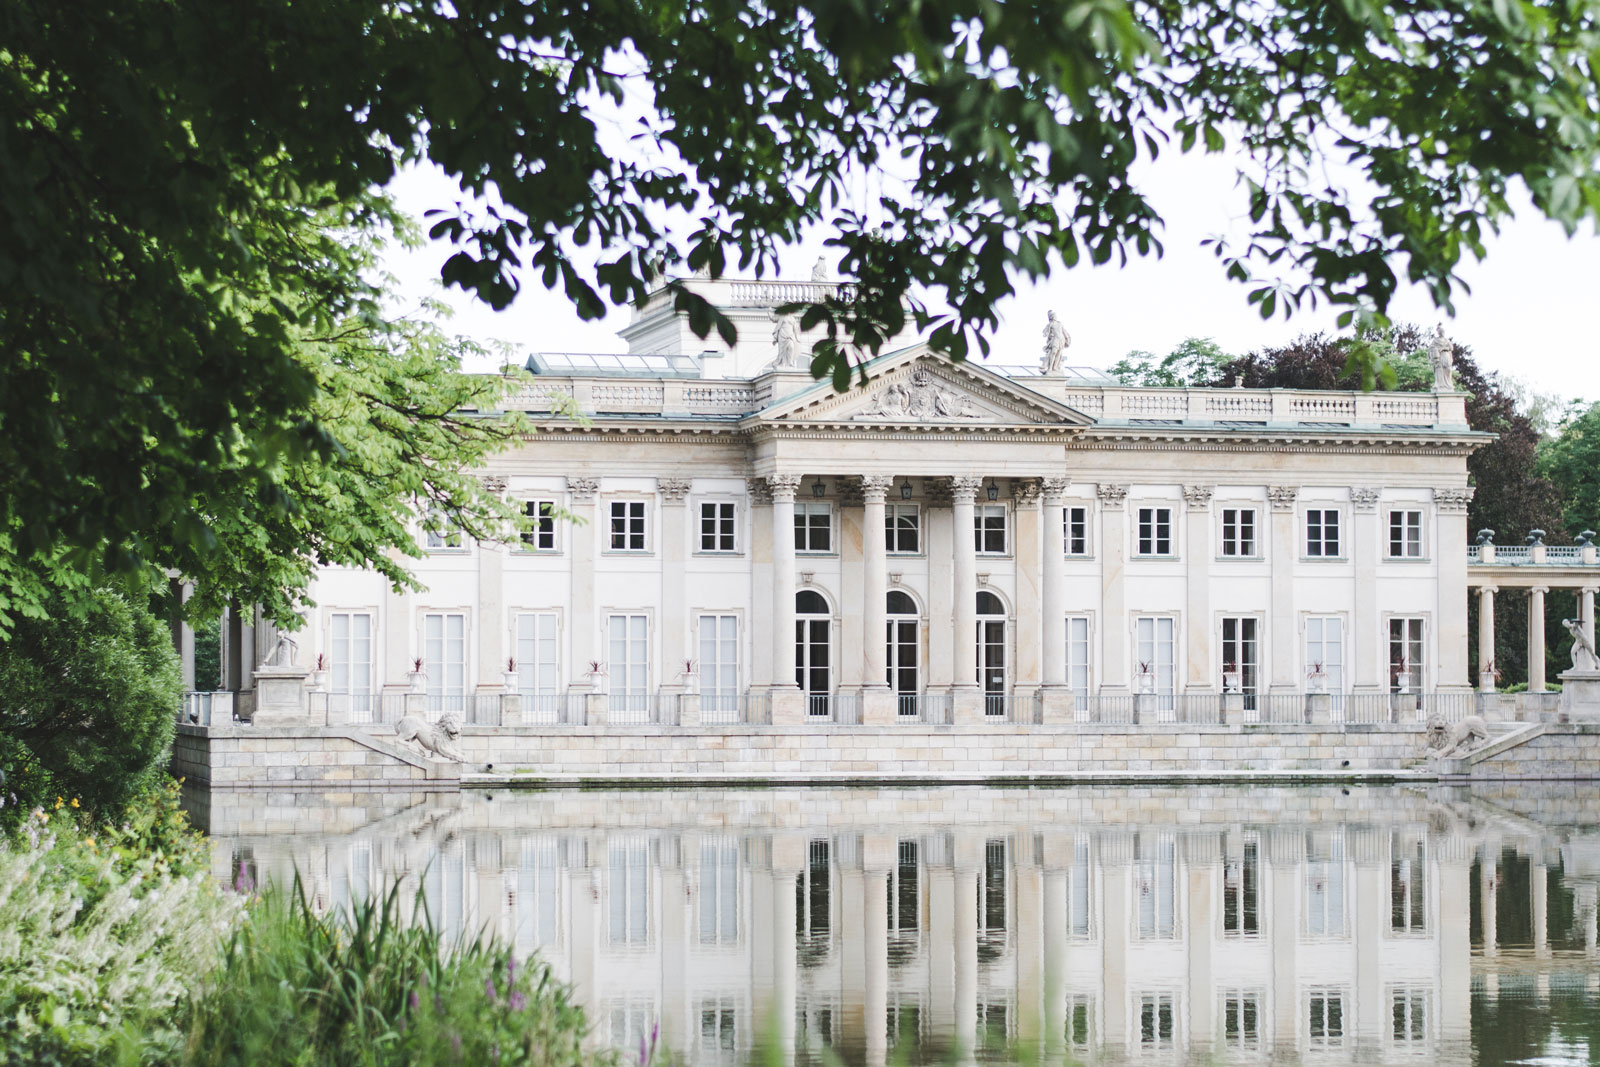 Palace-on-the-Water-Warsaw